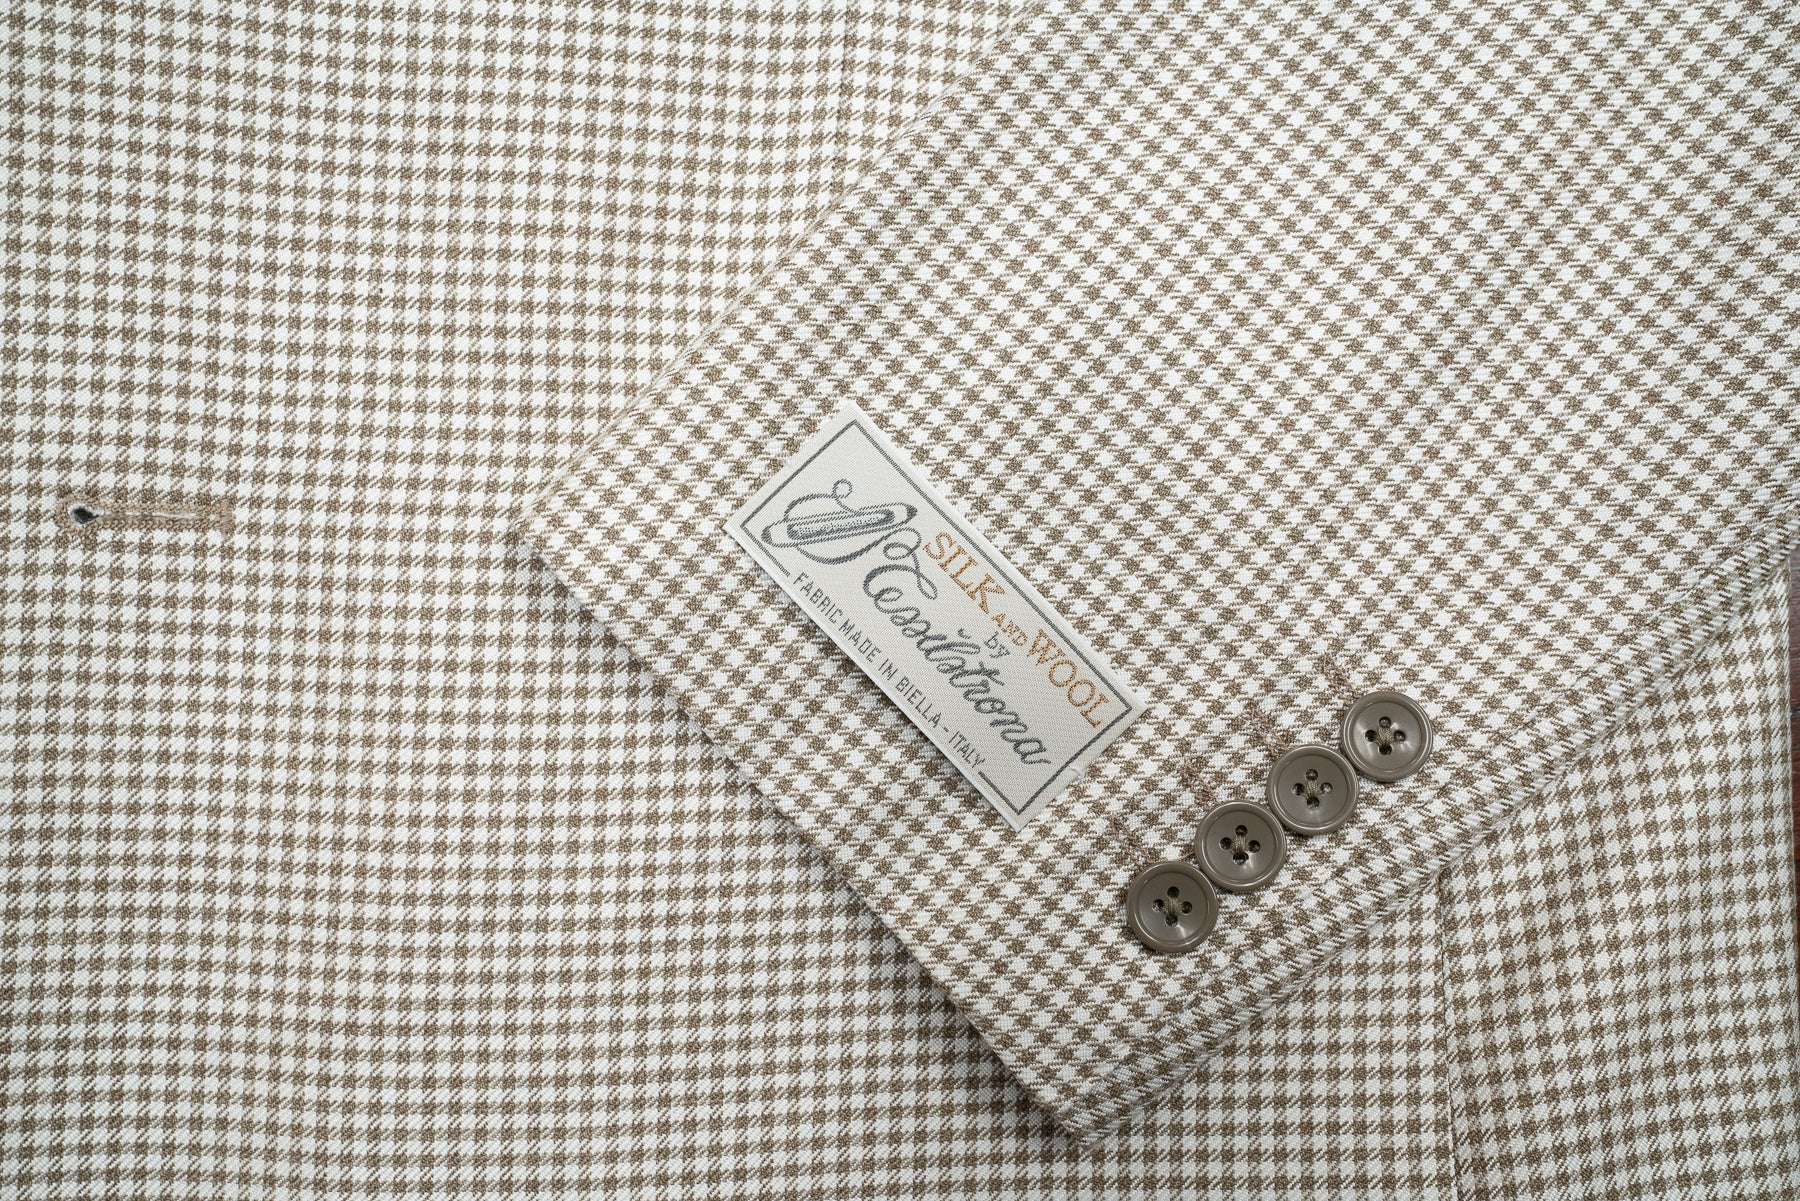 Tessilstrona Silk & Wool Check Sport Coat in Ivory & Tan - Rainwater's Men's Clothing and Tuxedo Rental